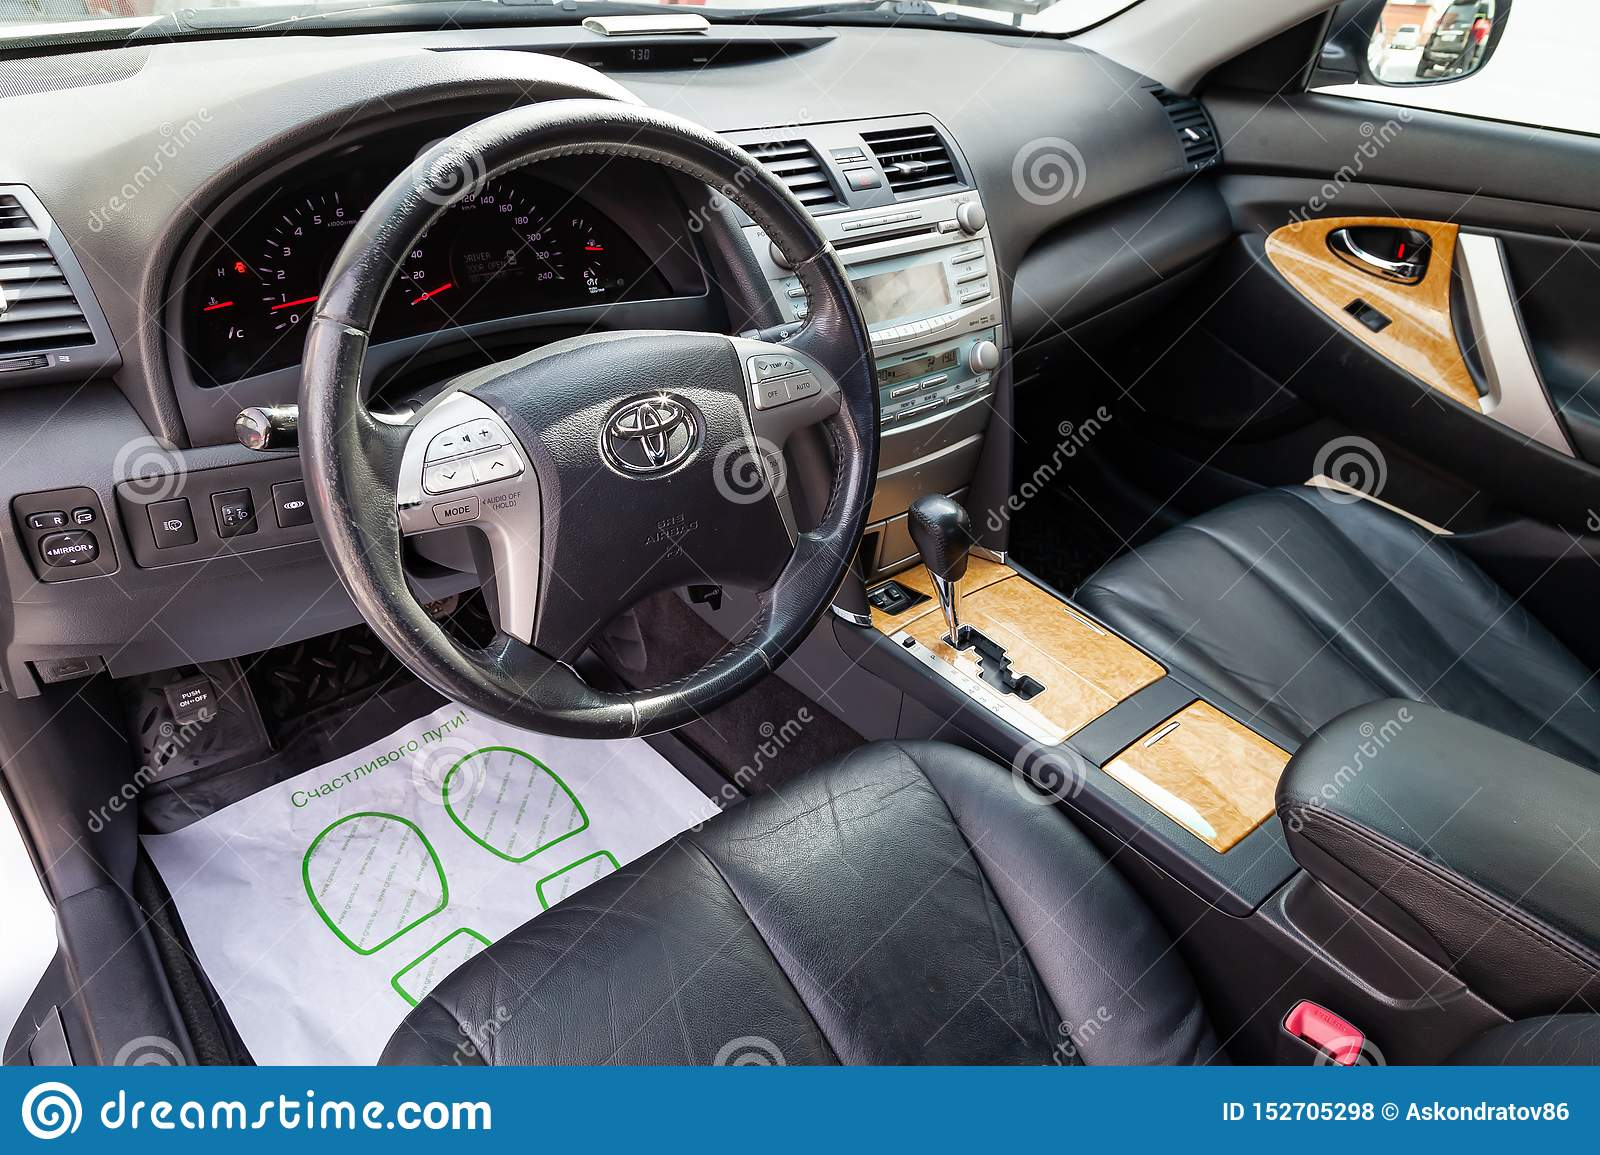 Toyota Camry Interior >> View To The Interior Of Toyota Camry 2006 With Dashboard